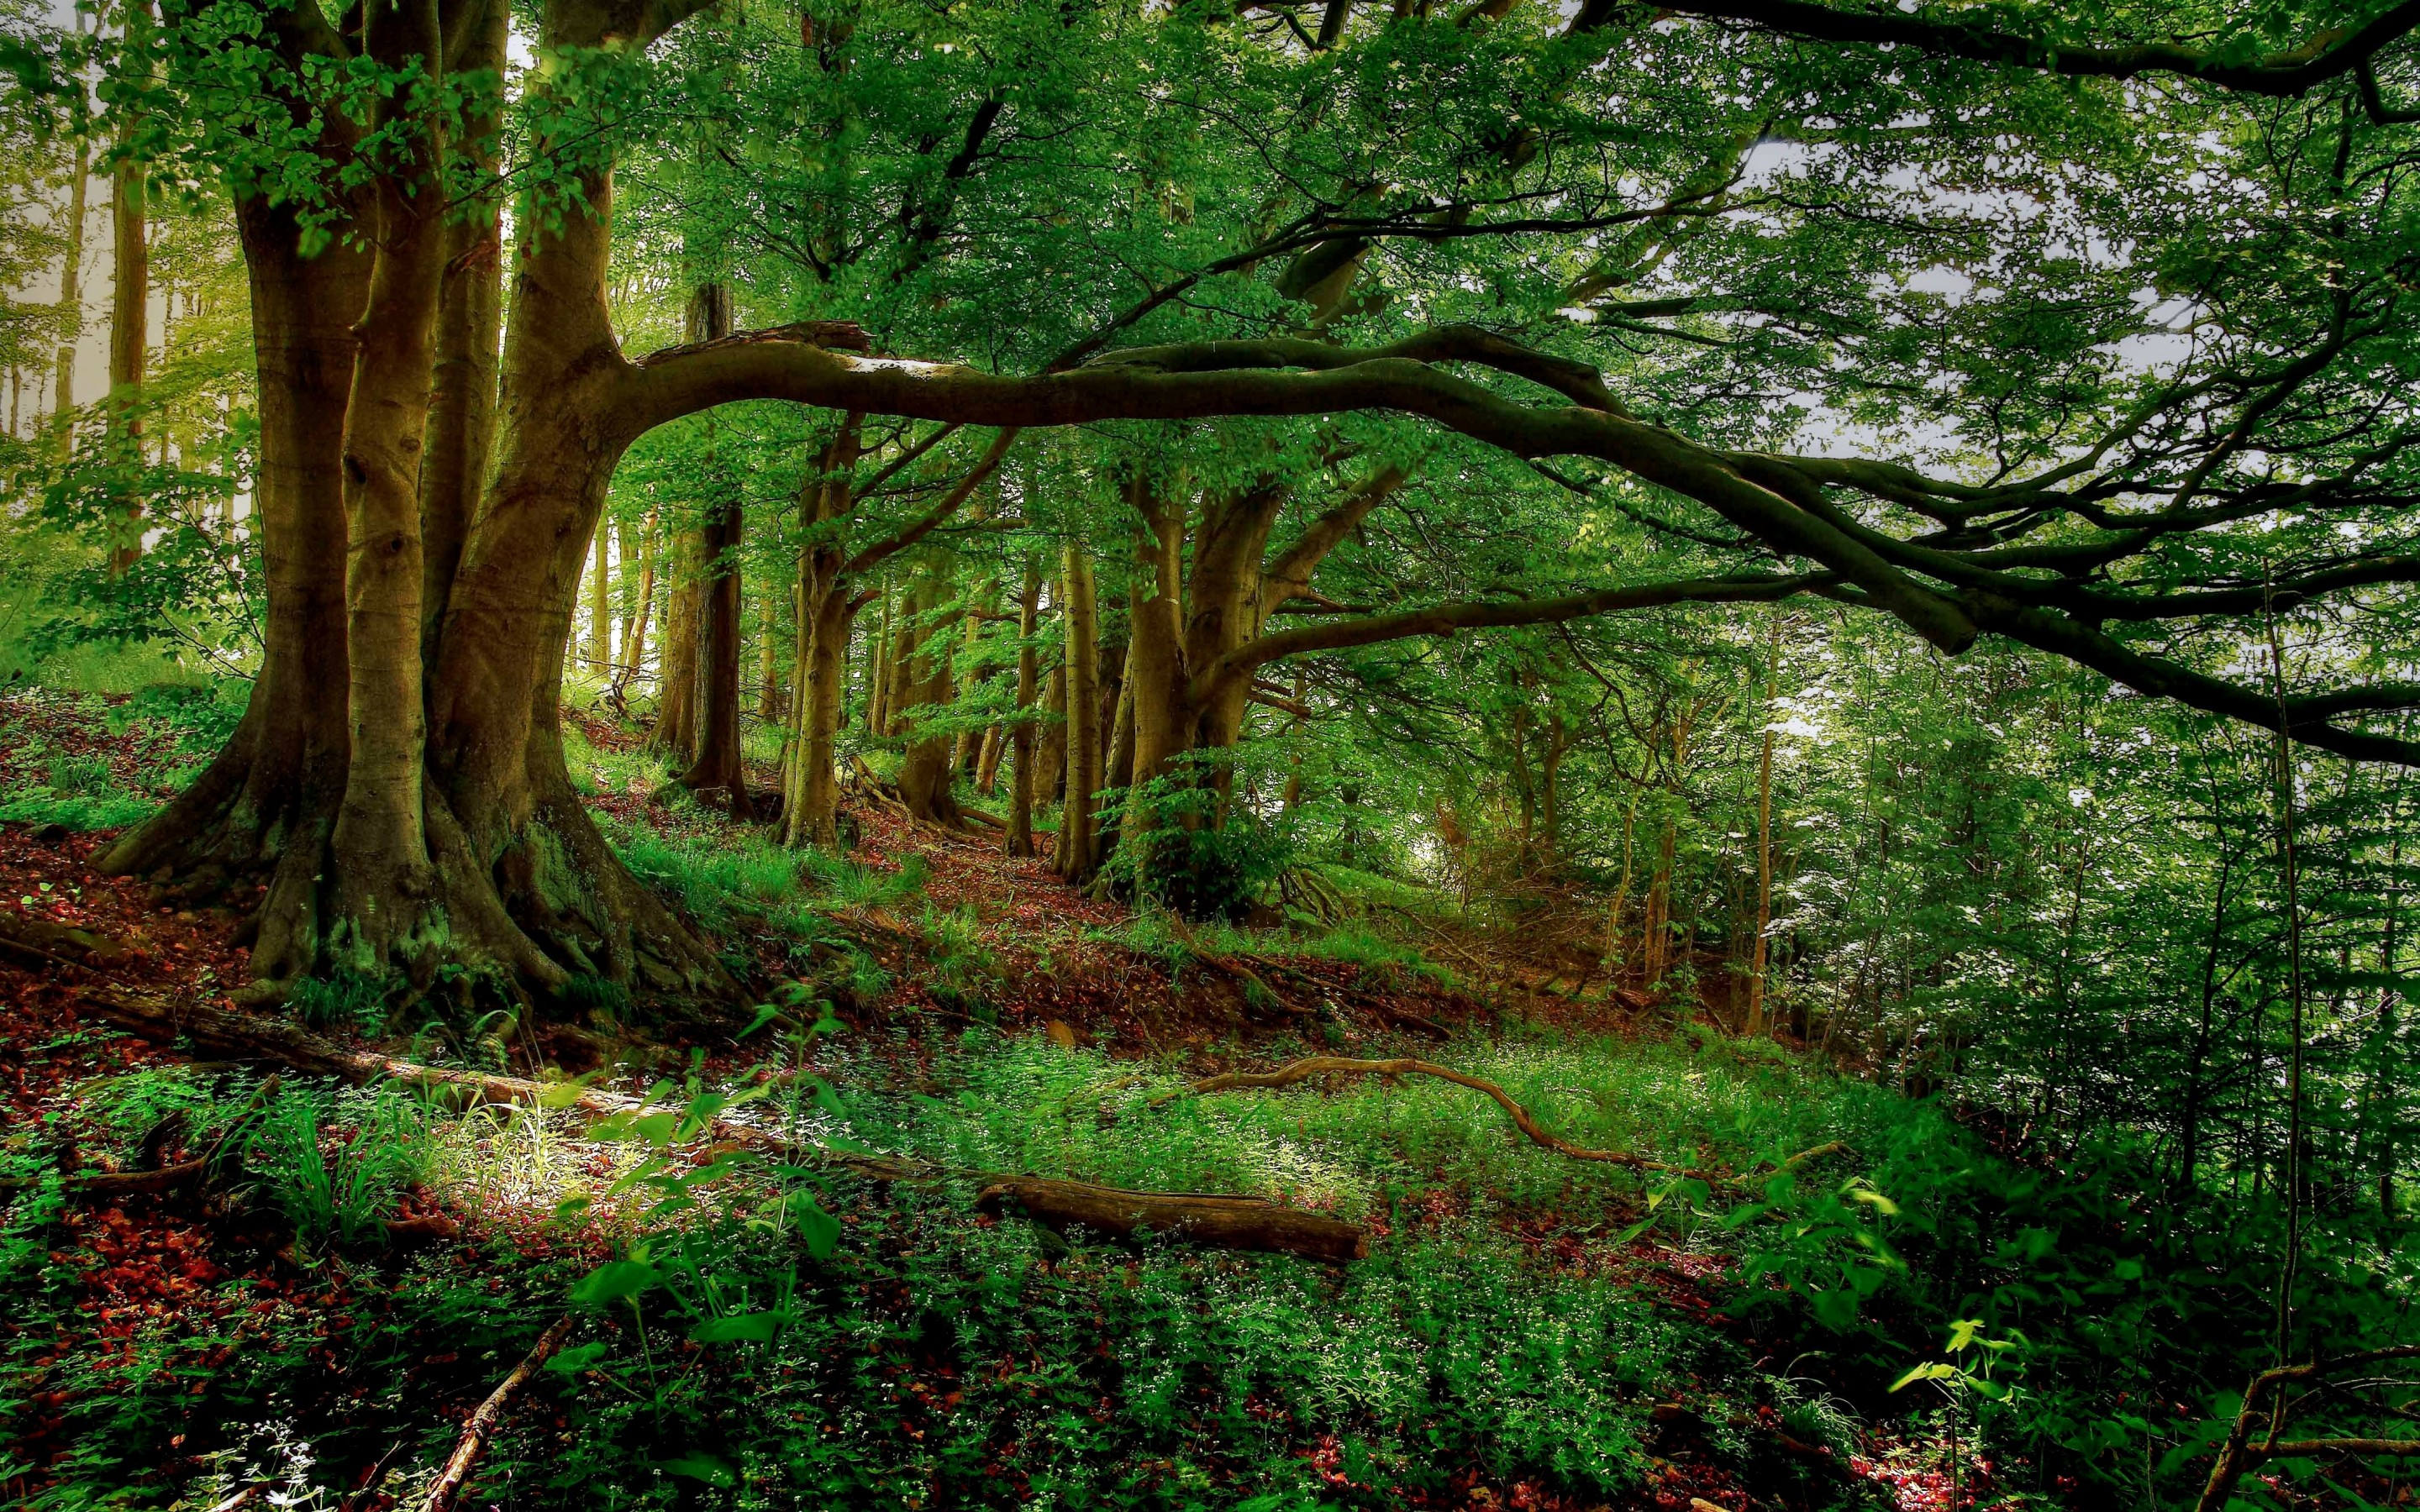 Forest Hd Wallpaper Background Image 2880x1800 Id